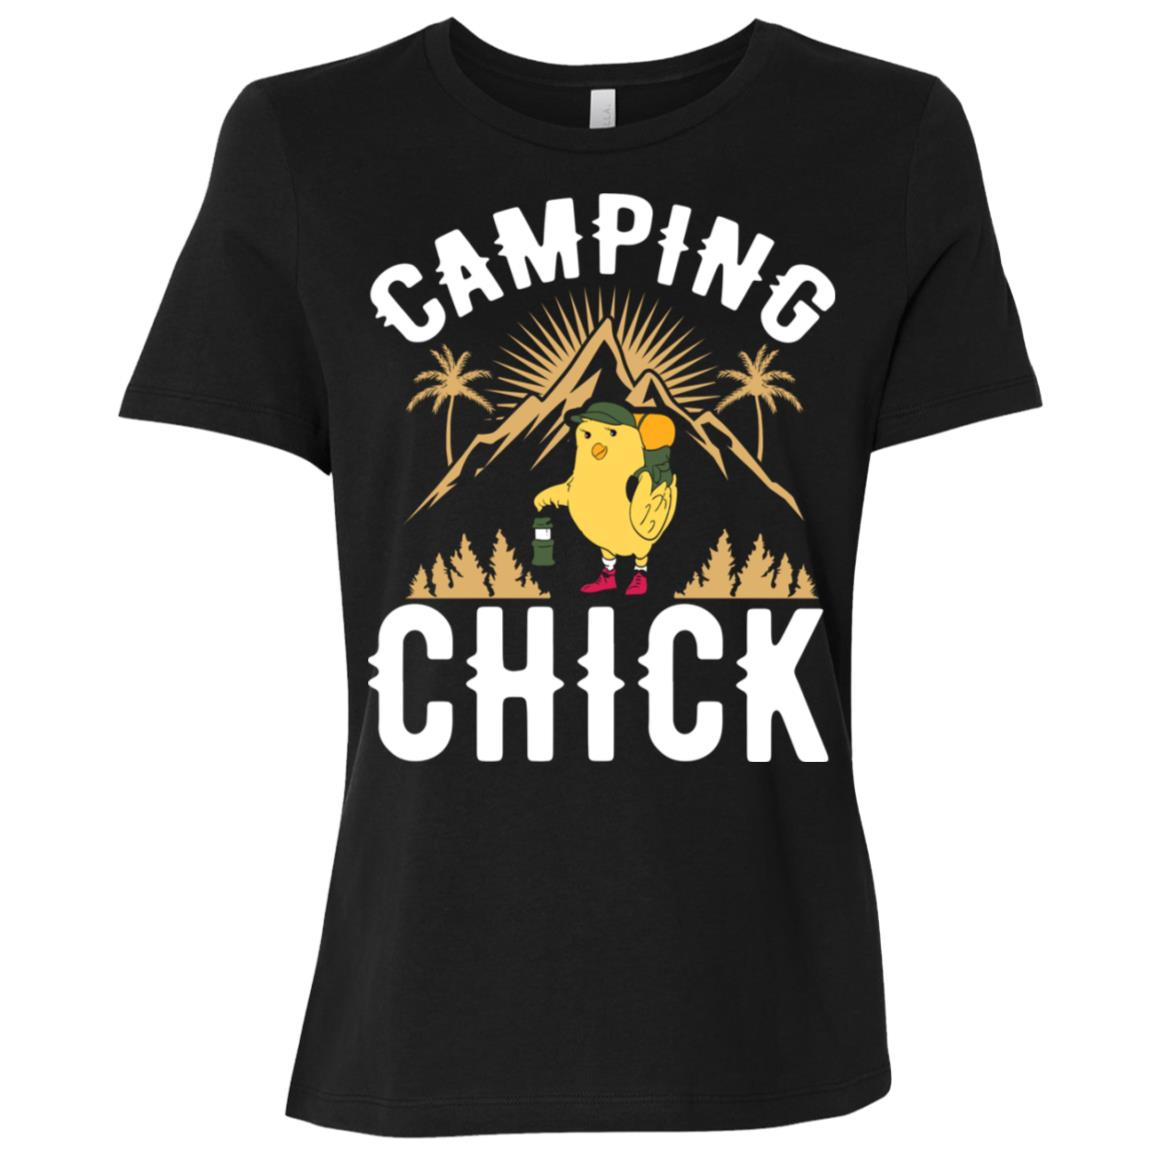 Camping Chick Camping Lovers Camper Women Short Sleeve T-Shirt